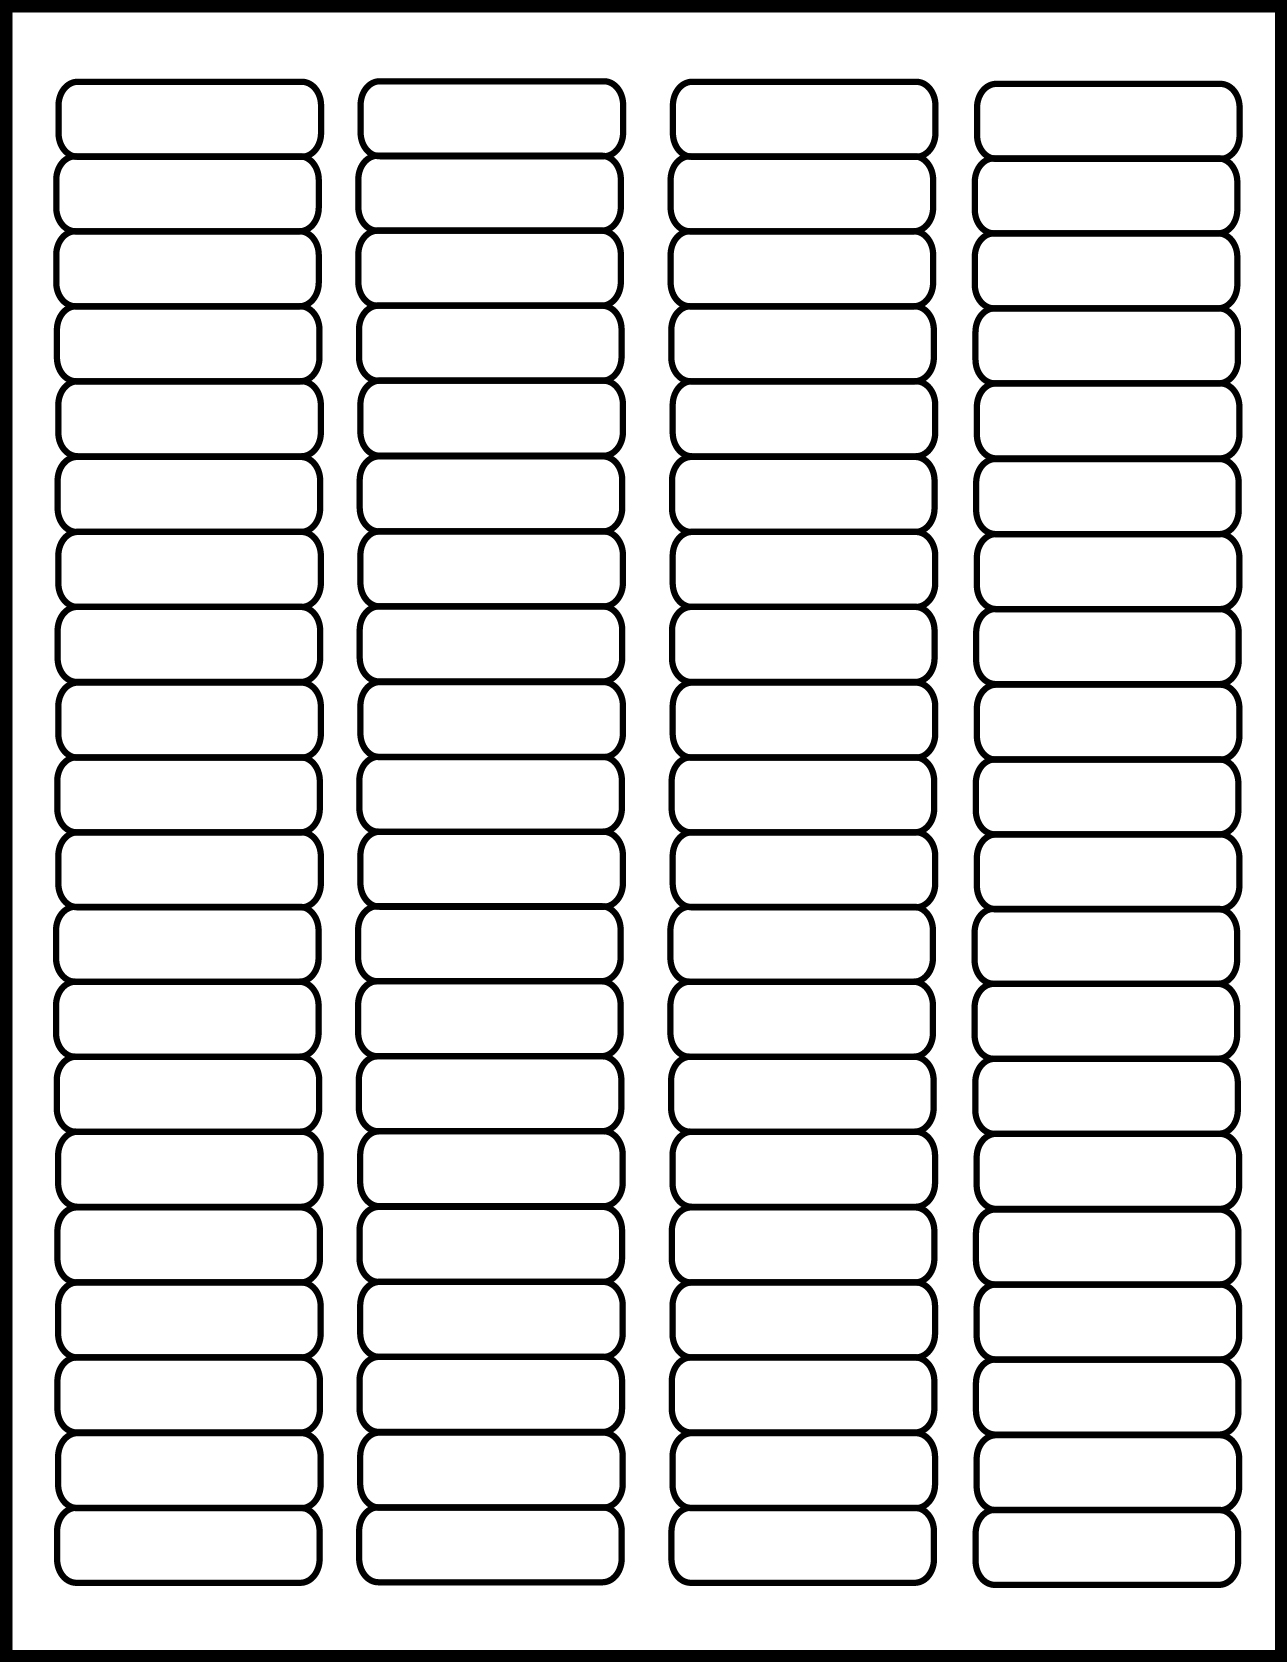 graphic relating to Printable Labels Sheets called Very clear Matte Laser Printable Labels 1 3/4 x 1/2 inch 50 sheets #1705CM